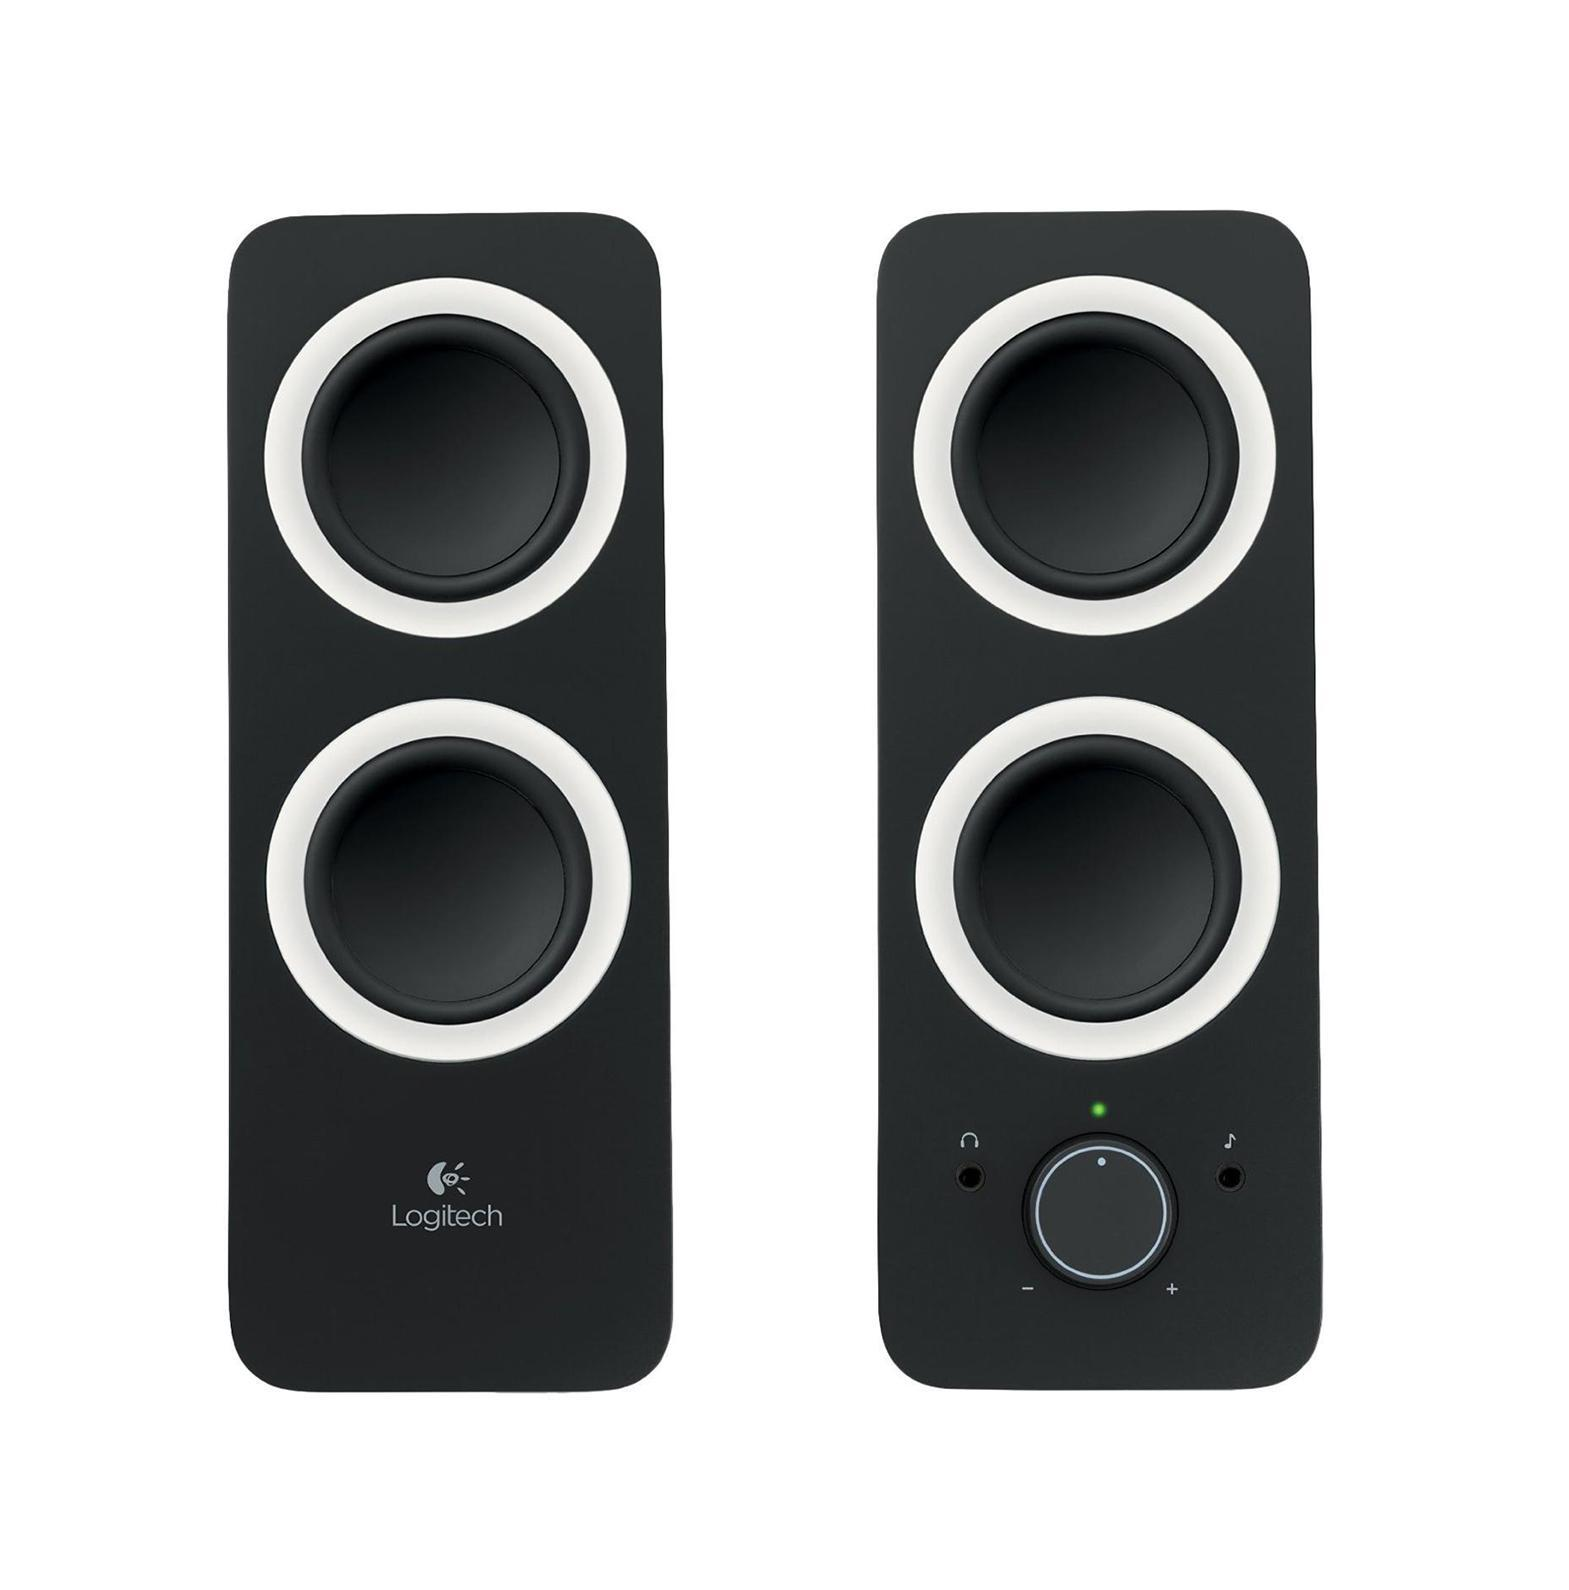 Logitech Z200, Midnight Black (980-000810) колонки колонка logitech z523 light speaker system 980 000367 980 000321